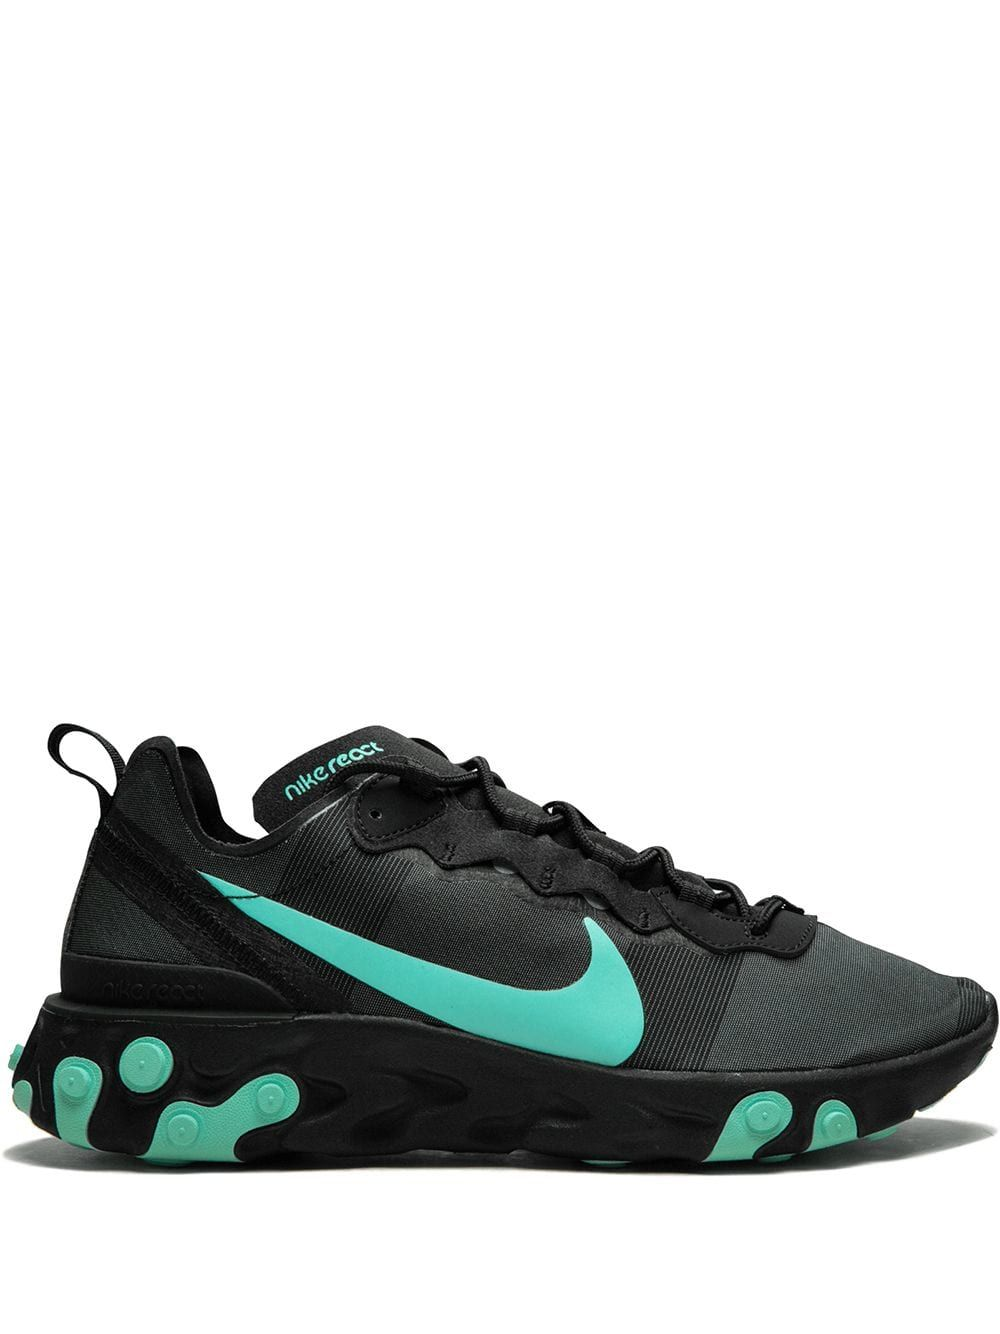 Nike React Element 55 Sneakers | Nike, Sneakers, Black nikes